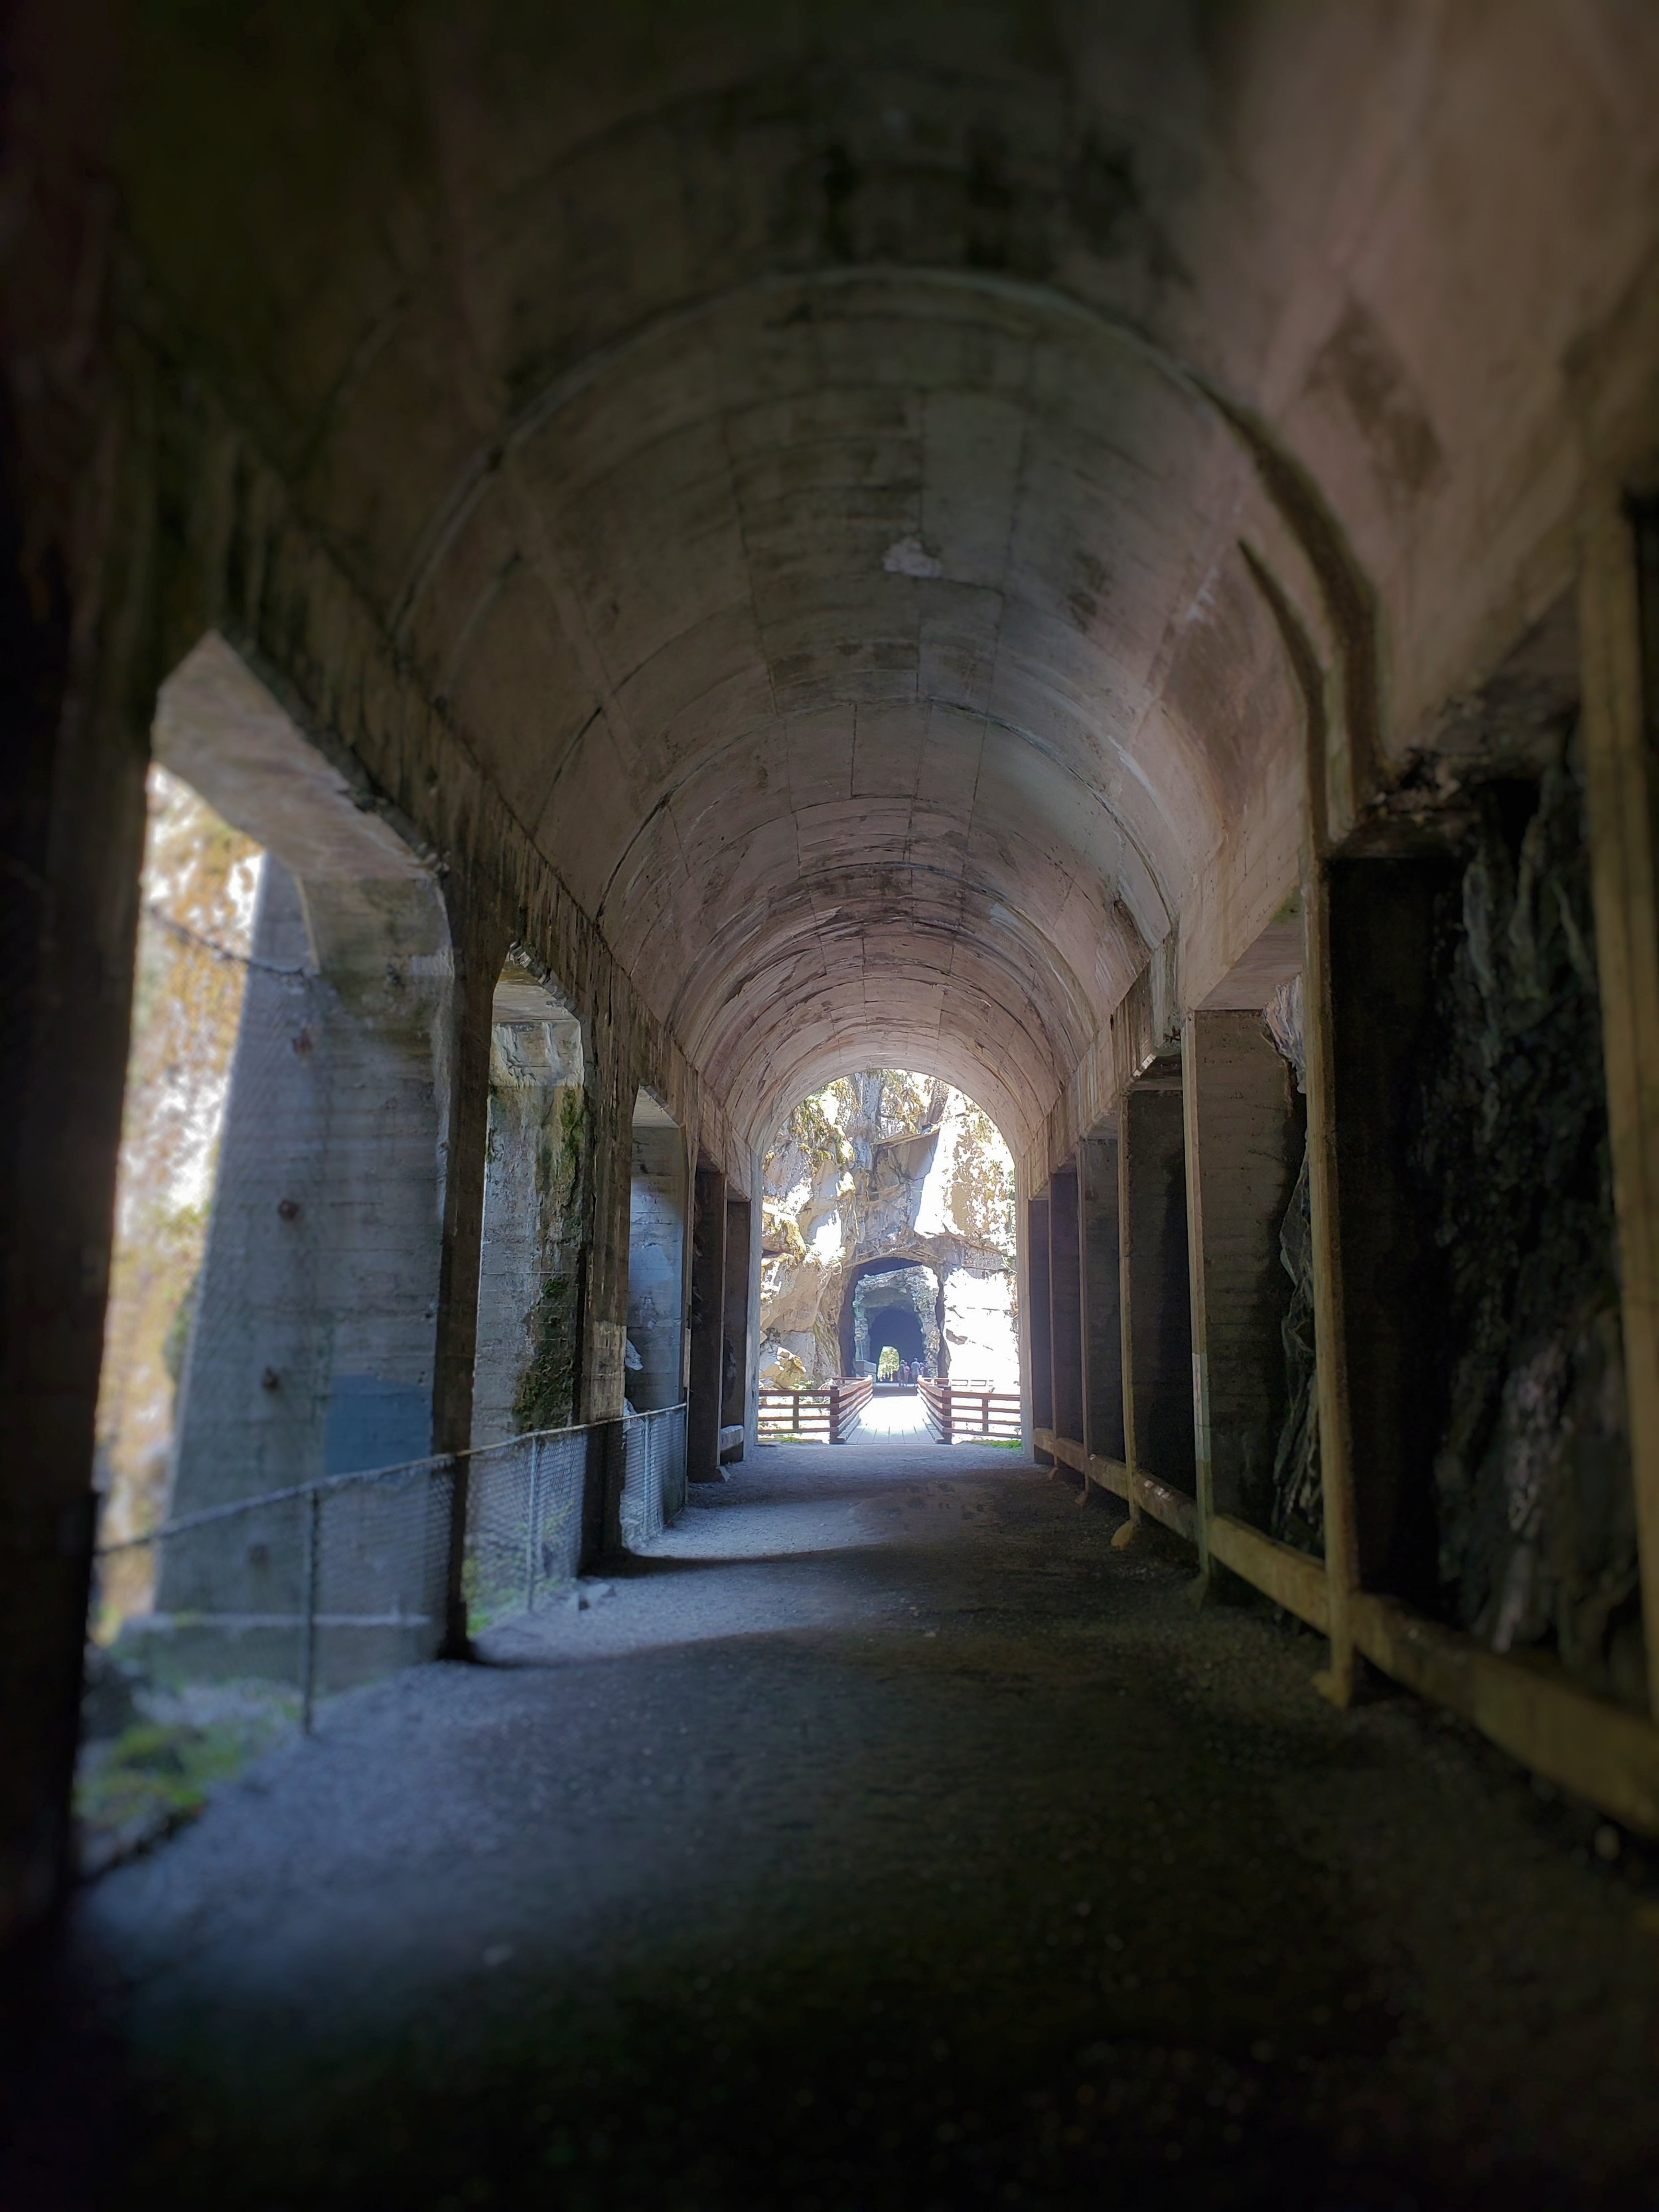 One of the tunnels has these cement pillars that give it a cathedral-esque feel.